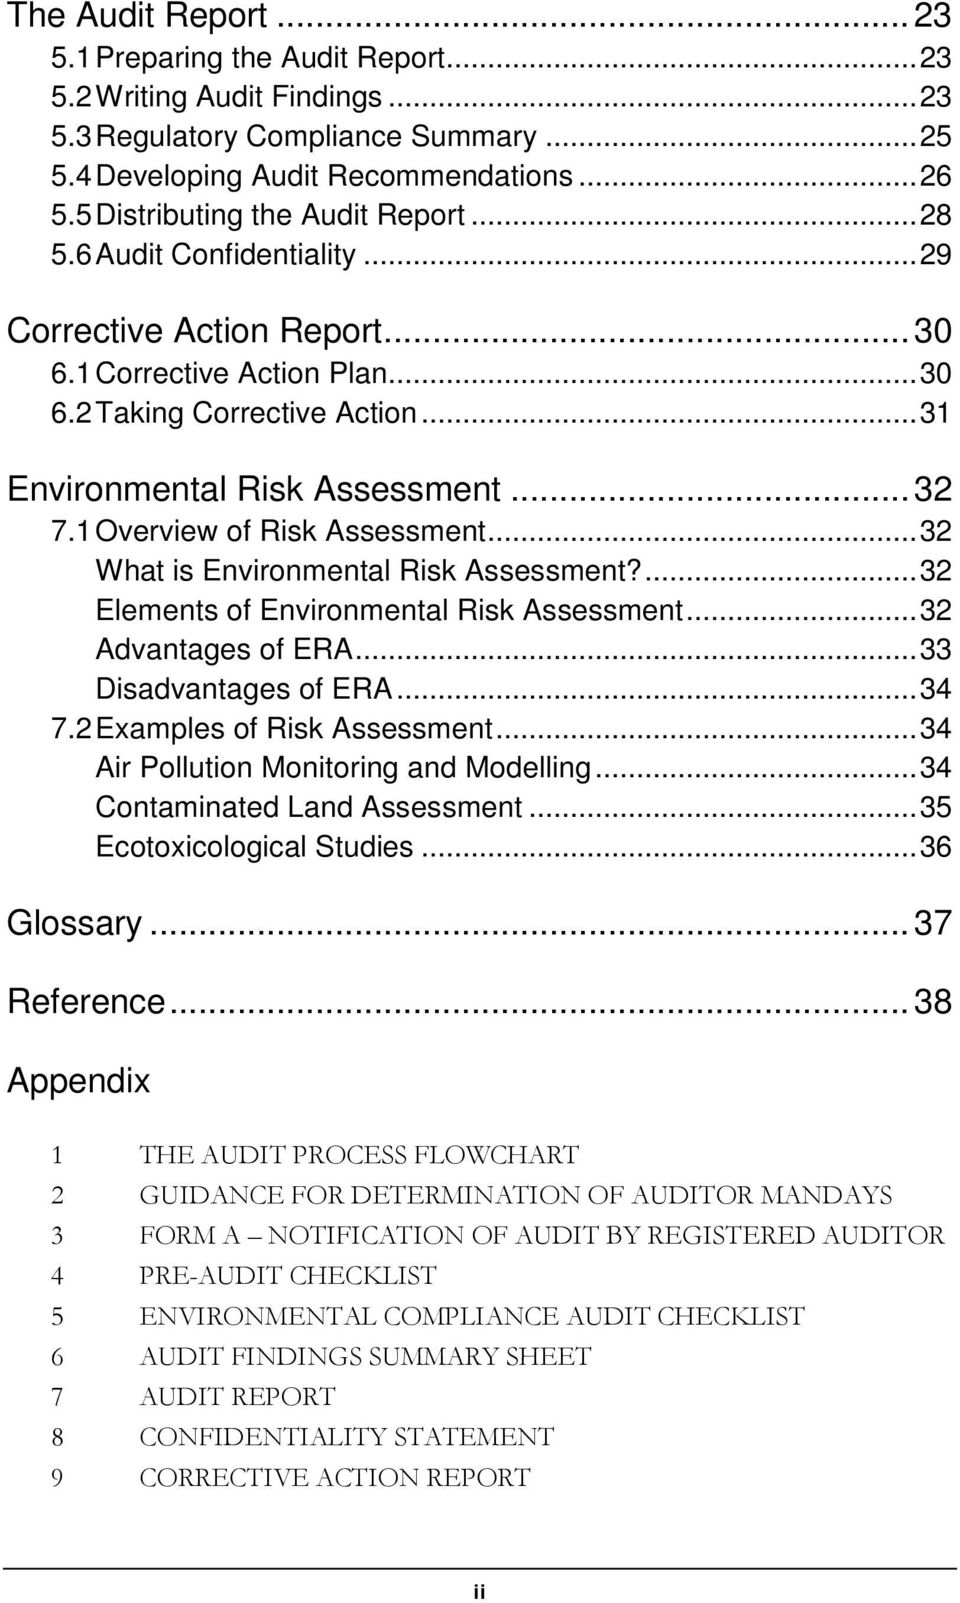 .. 32 7.1 Overview of Risk Assessment... 32 What is Environmental Risk Assessment?... 32 Elements of Environmental Risk Assessment... 32 Advantages of ERA... 33 Disadvantages of ERA... 34 7.